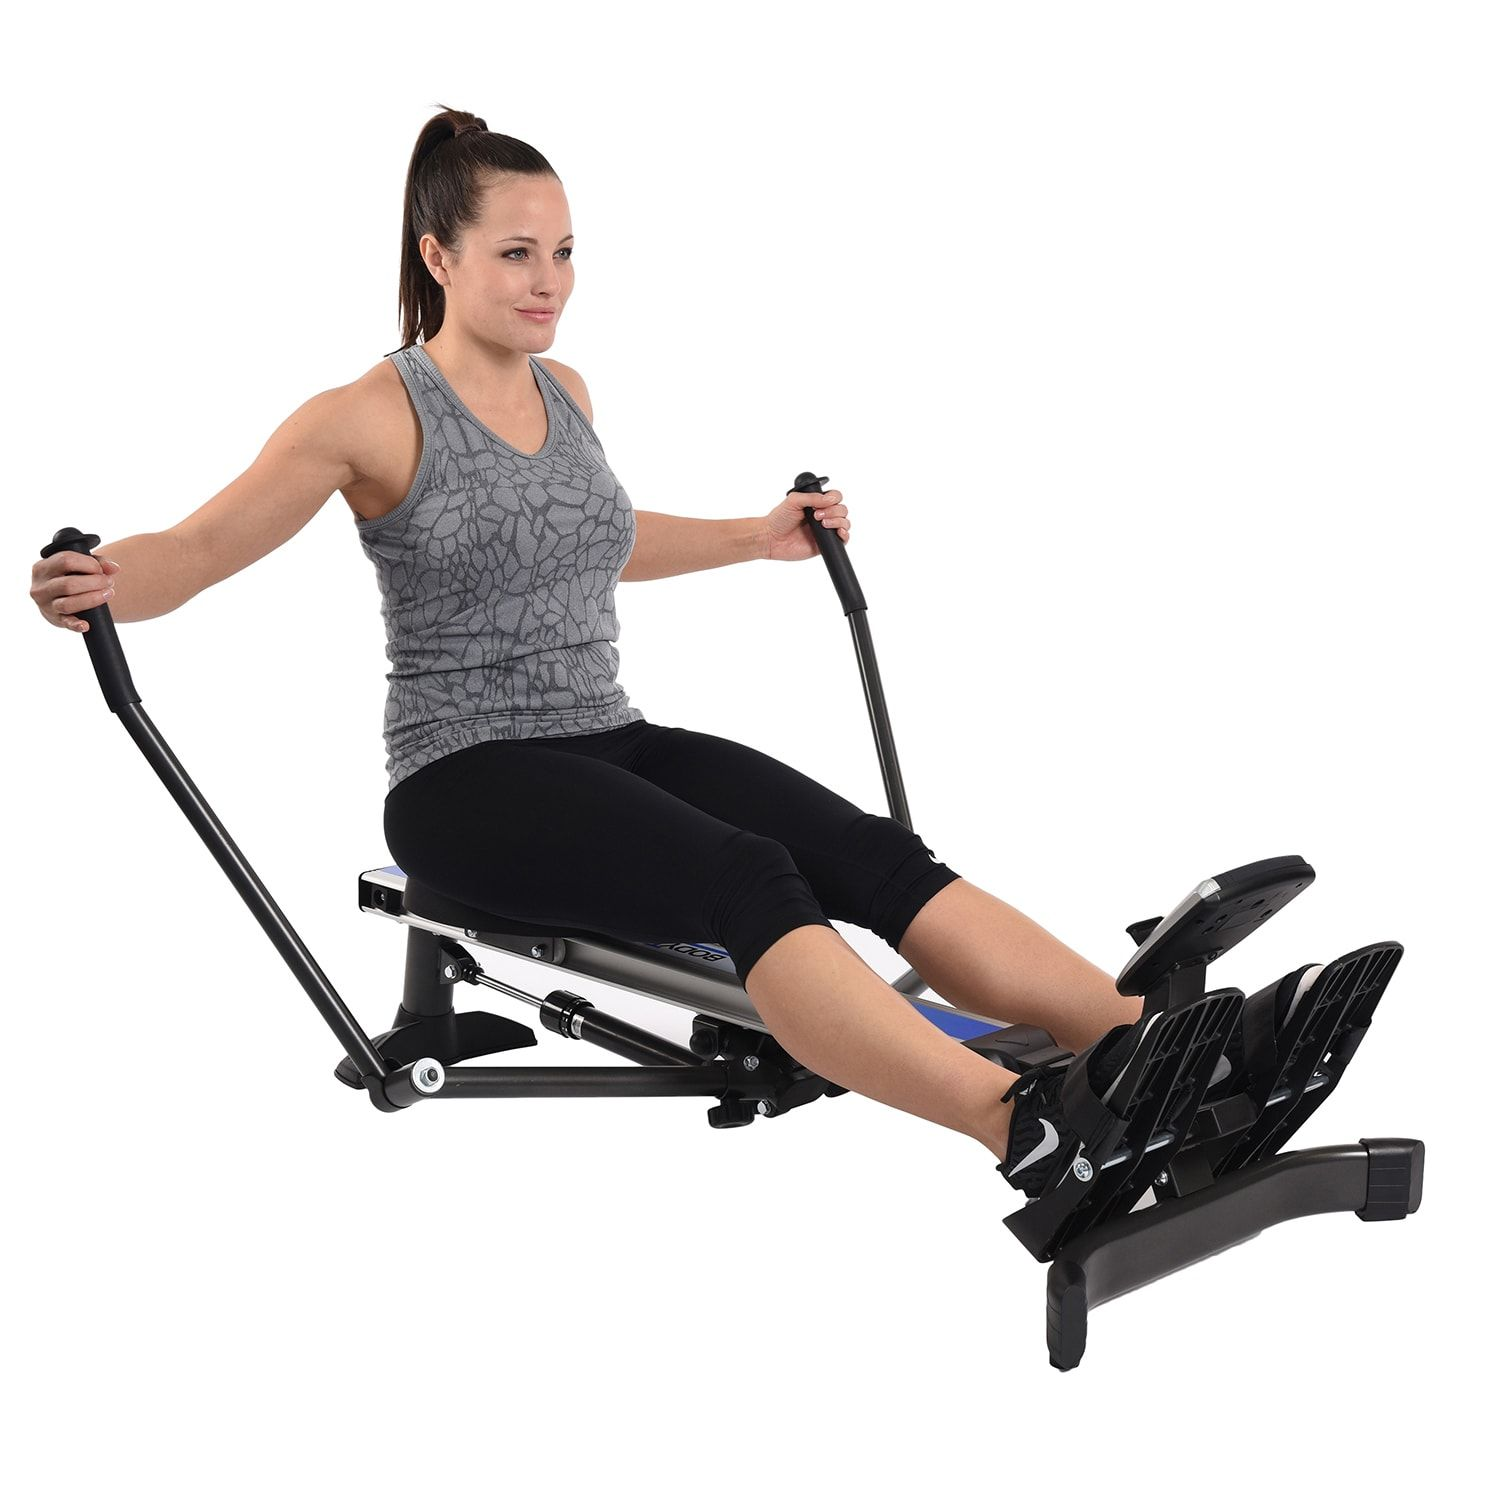 Stamina Bodytrac Glider 1060 Rower No Equipment Workout Home Workout Equipment Rowing